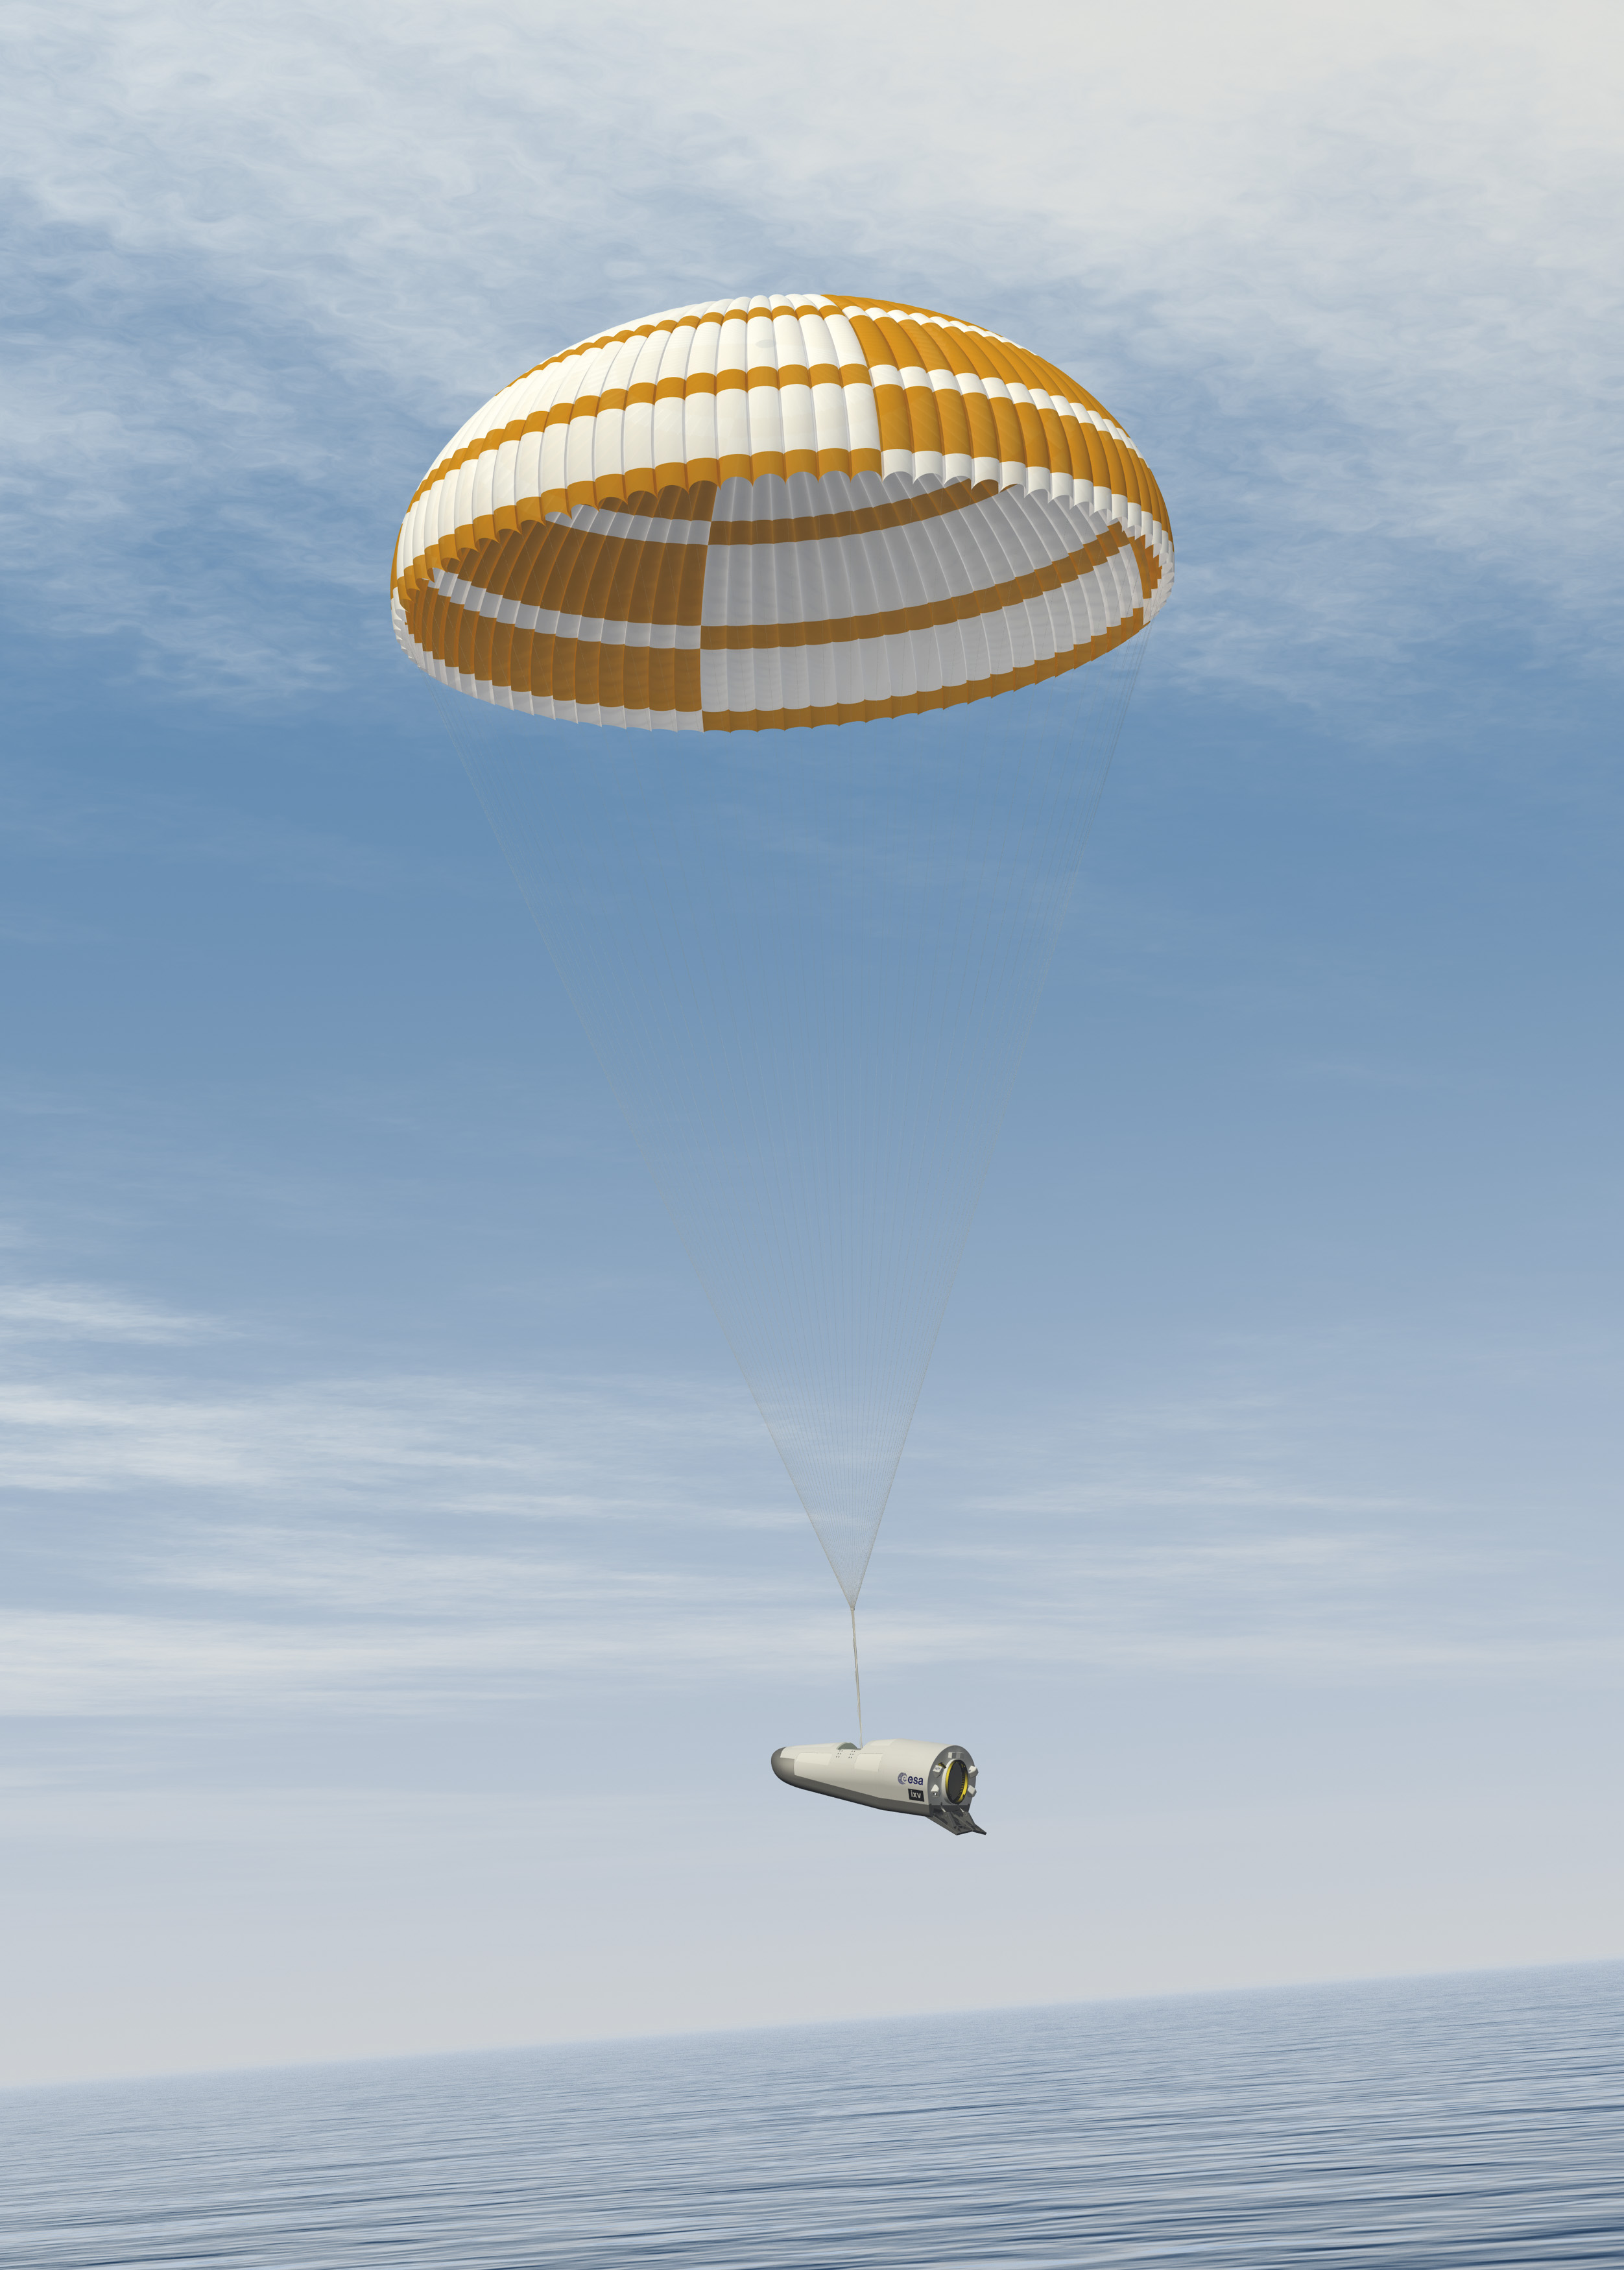 The IXV's main parachute deploys to slow the spacecraft's descent to the Pacific Ocean to about 6 meters per second (13 mph).